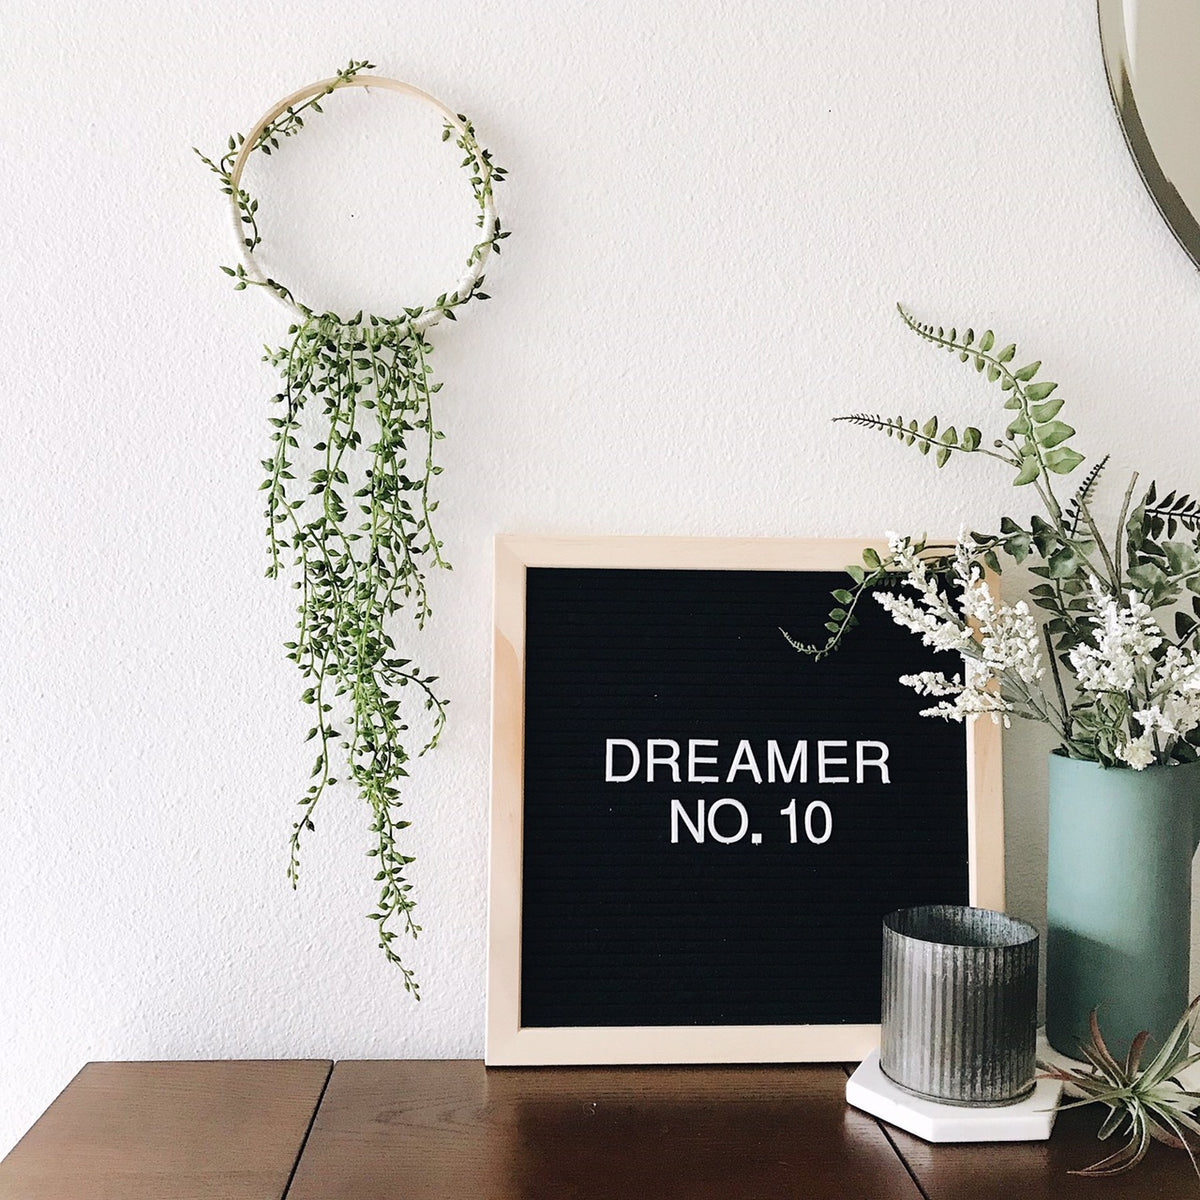 Dreamer No. 10 | 100 Days of Dreamers